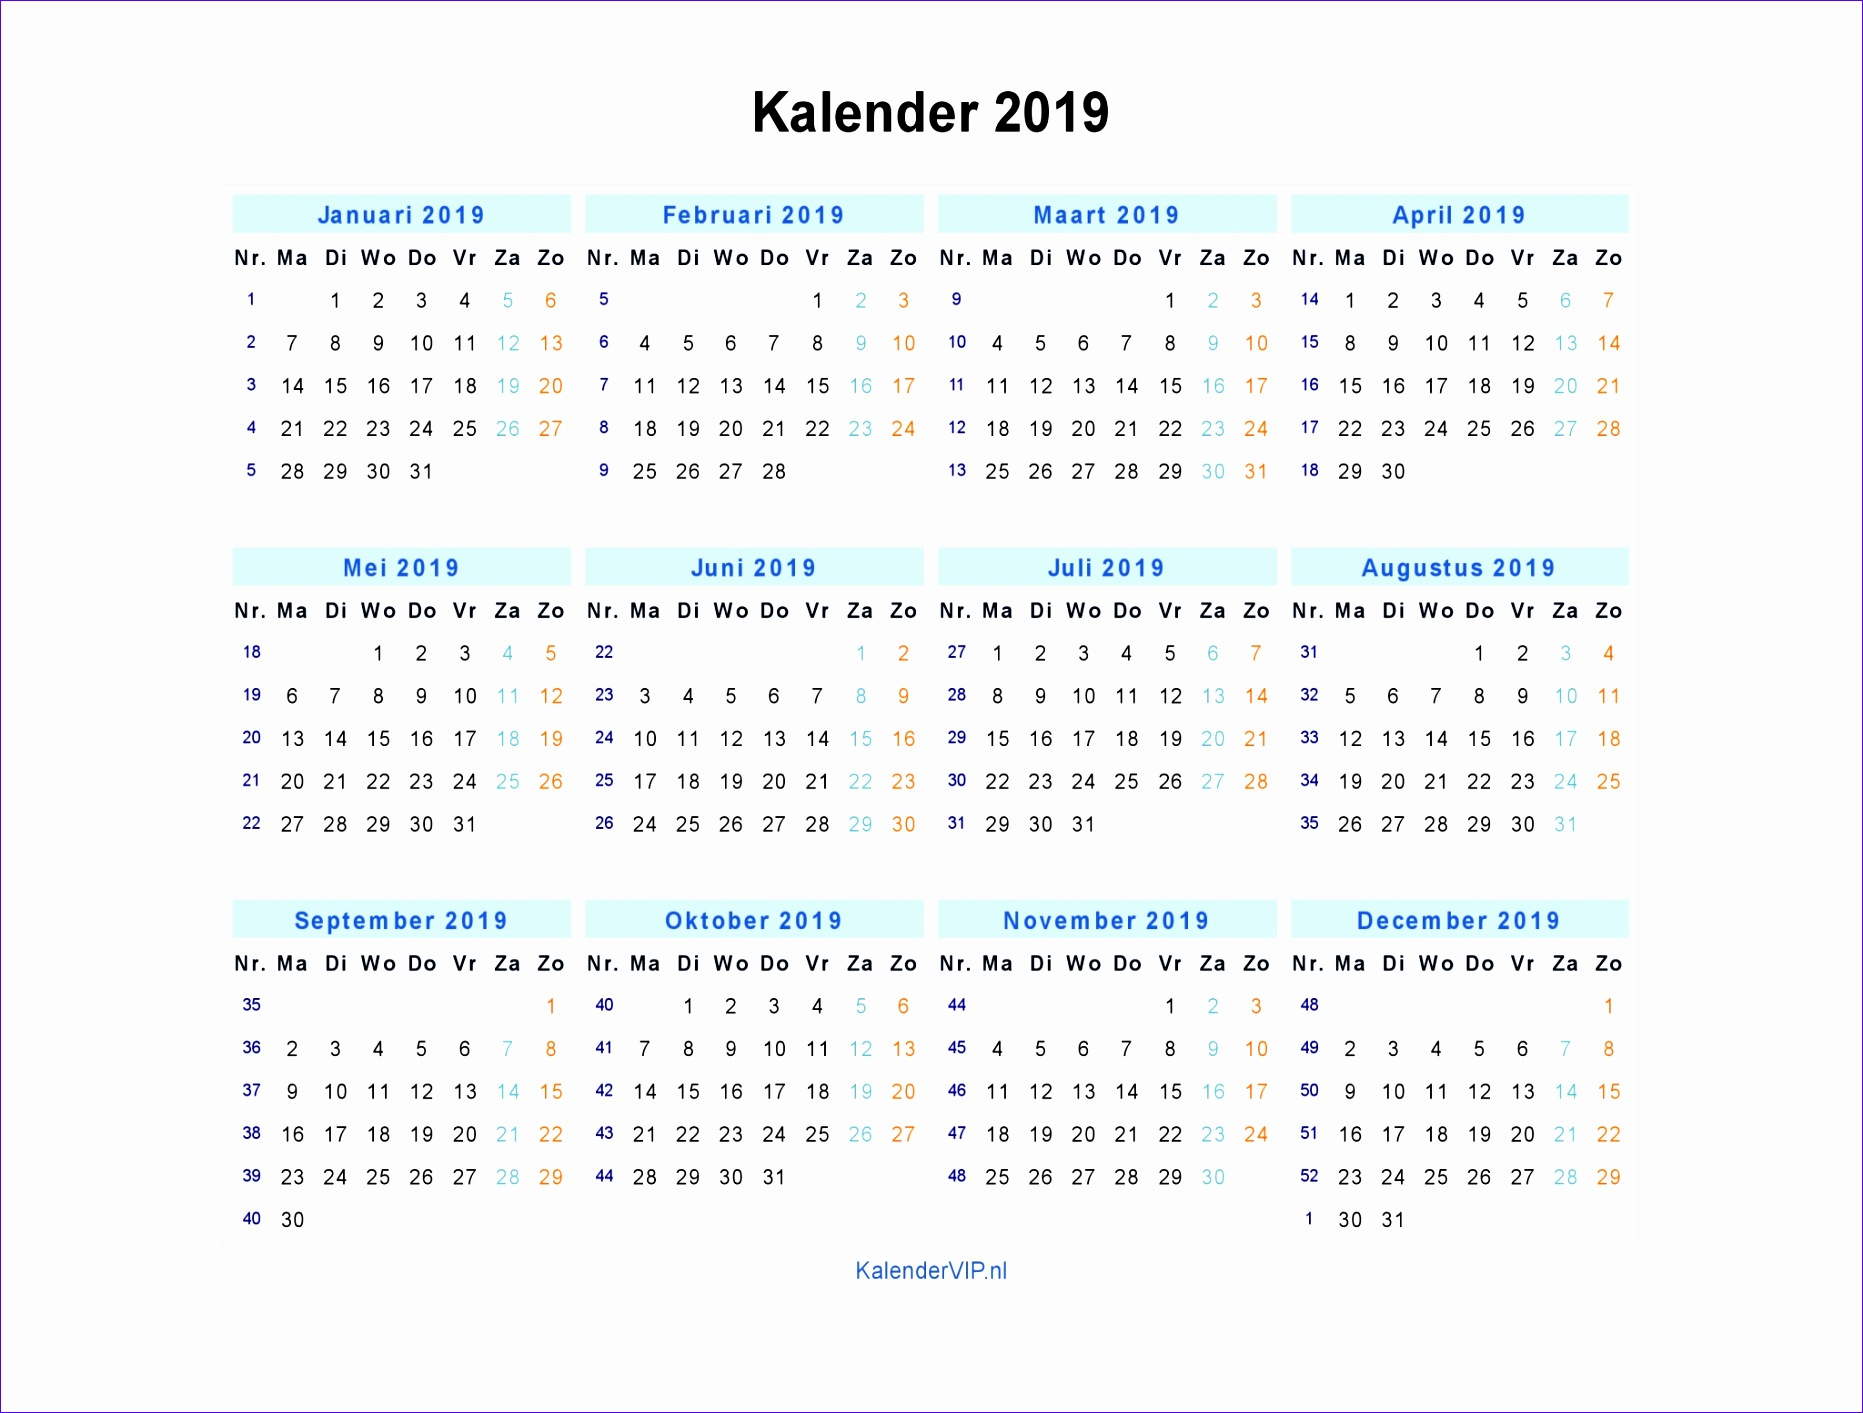 Excel Calendar 2018 Template Sbezv Best Of Kalender 2019 ...